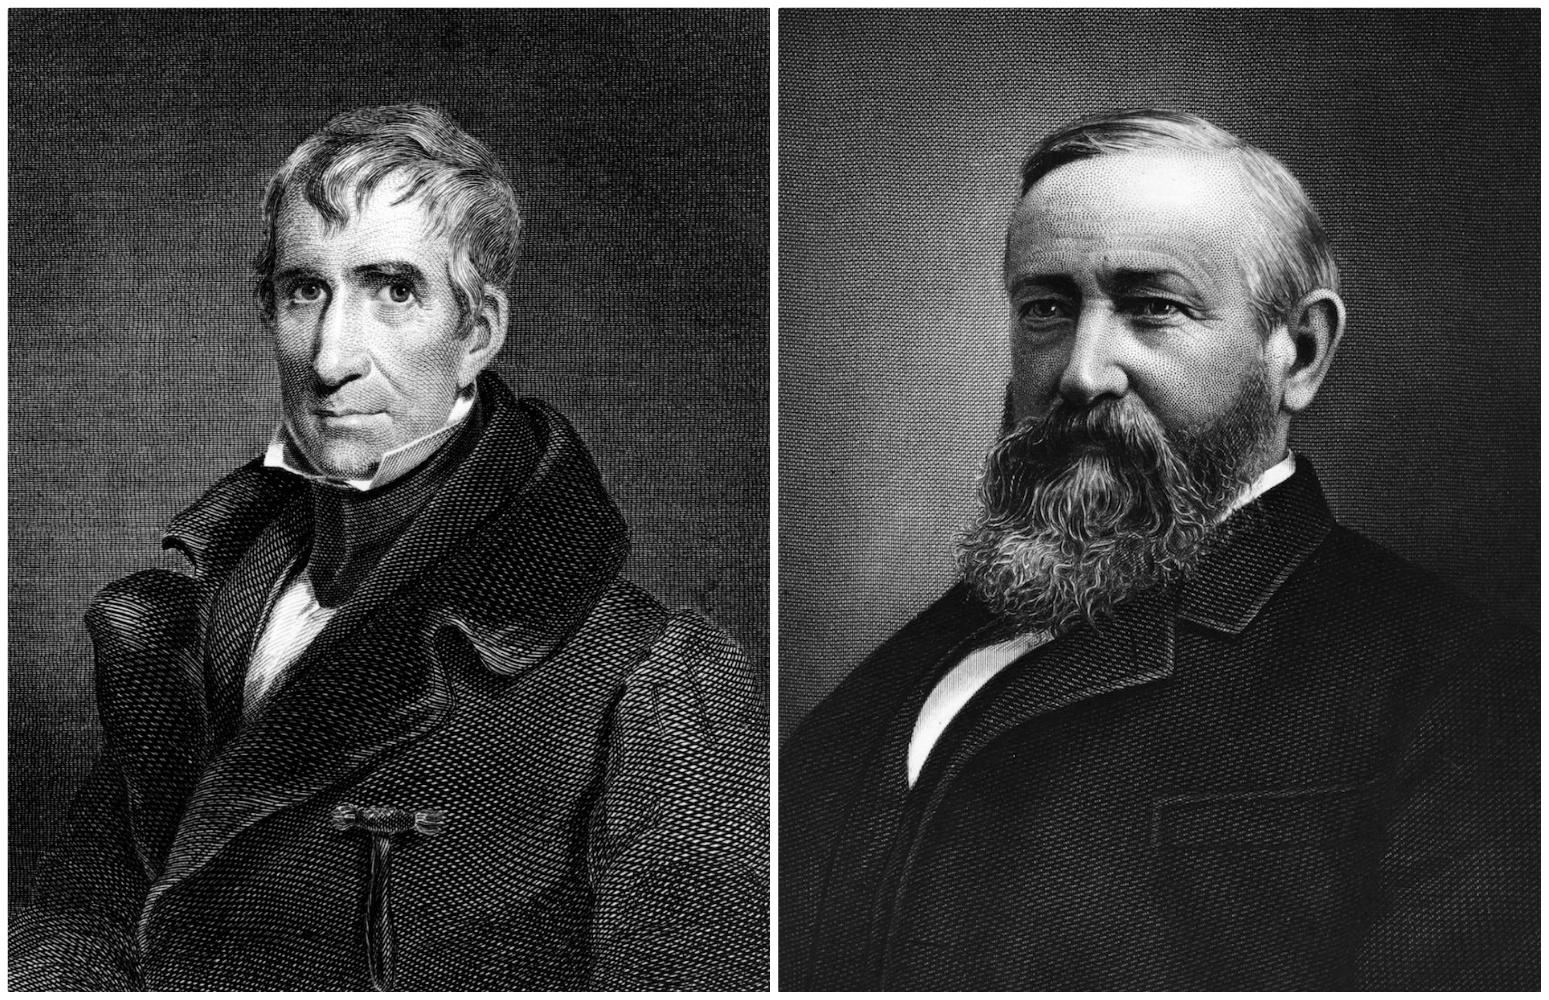 William Henry and Benjamin Harrison